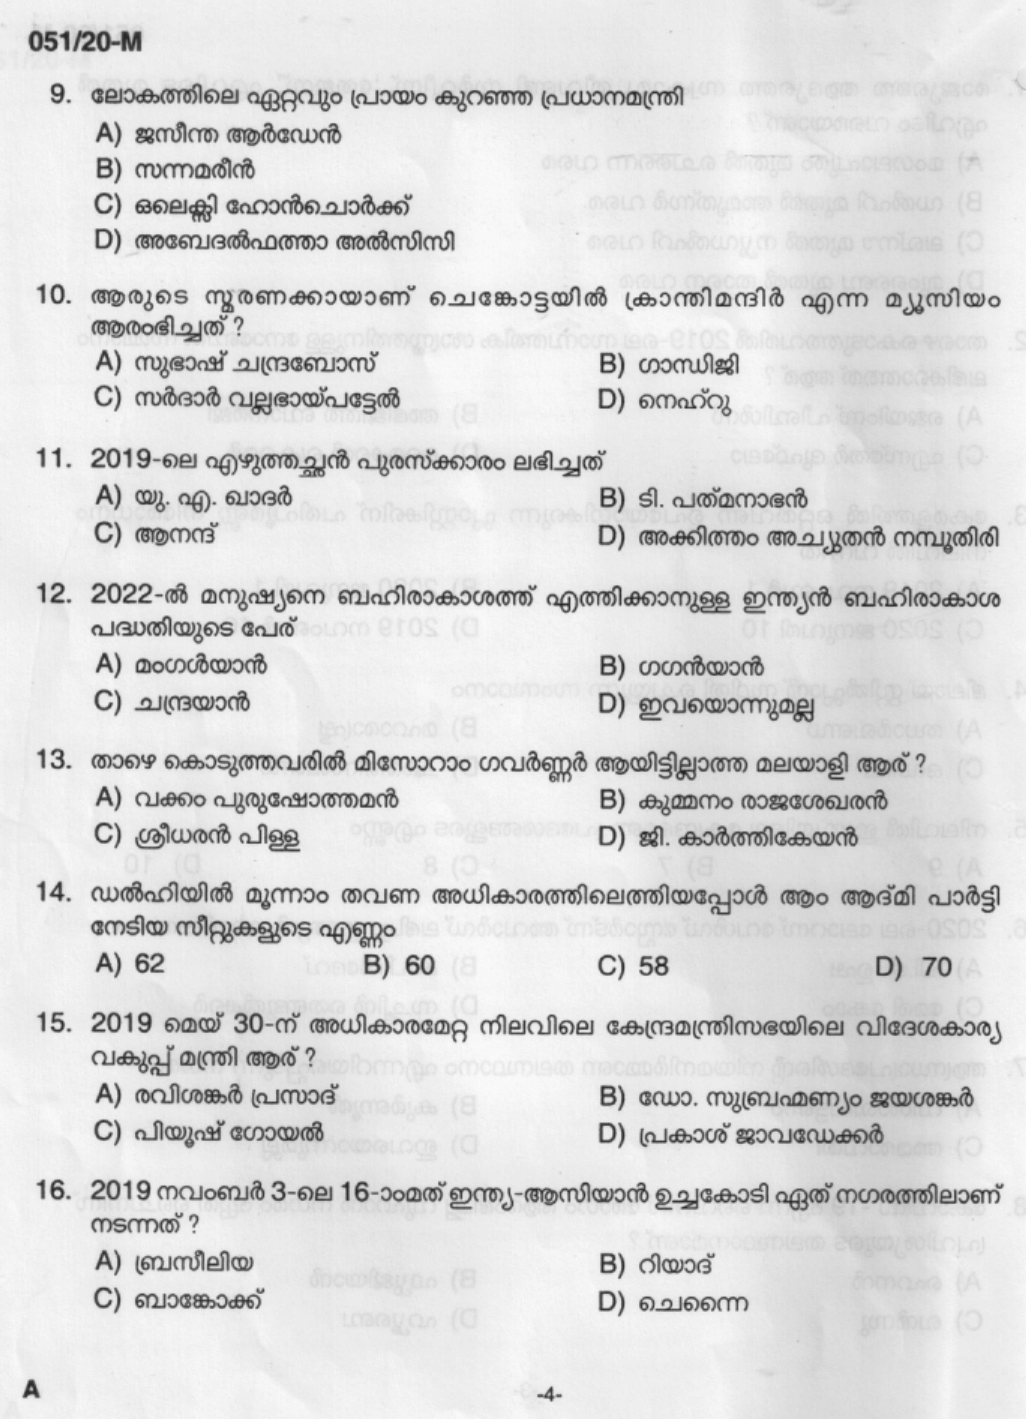 LP School Teacher Question Paper with Answer Key 51/2020